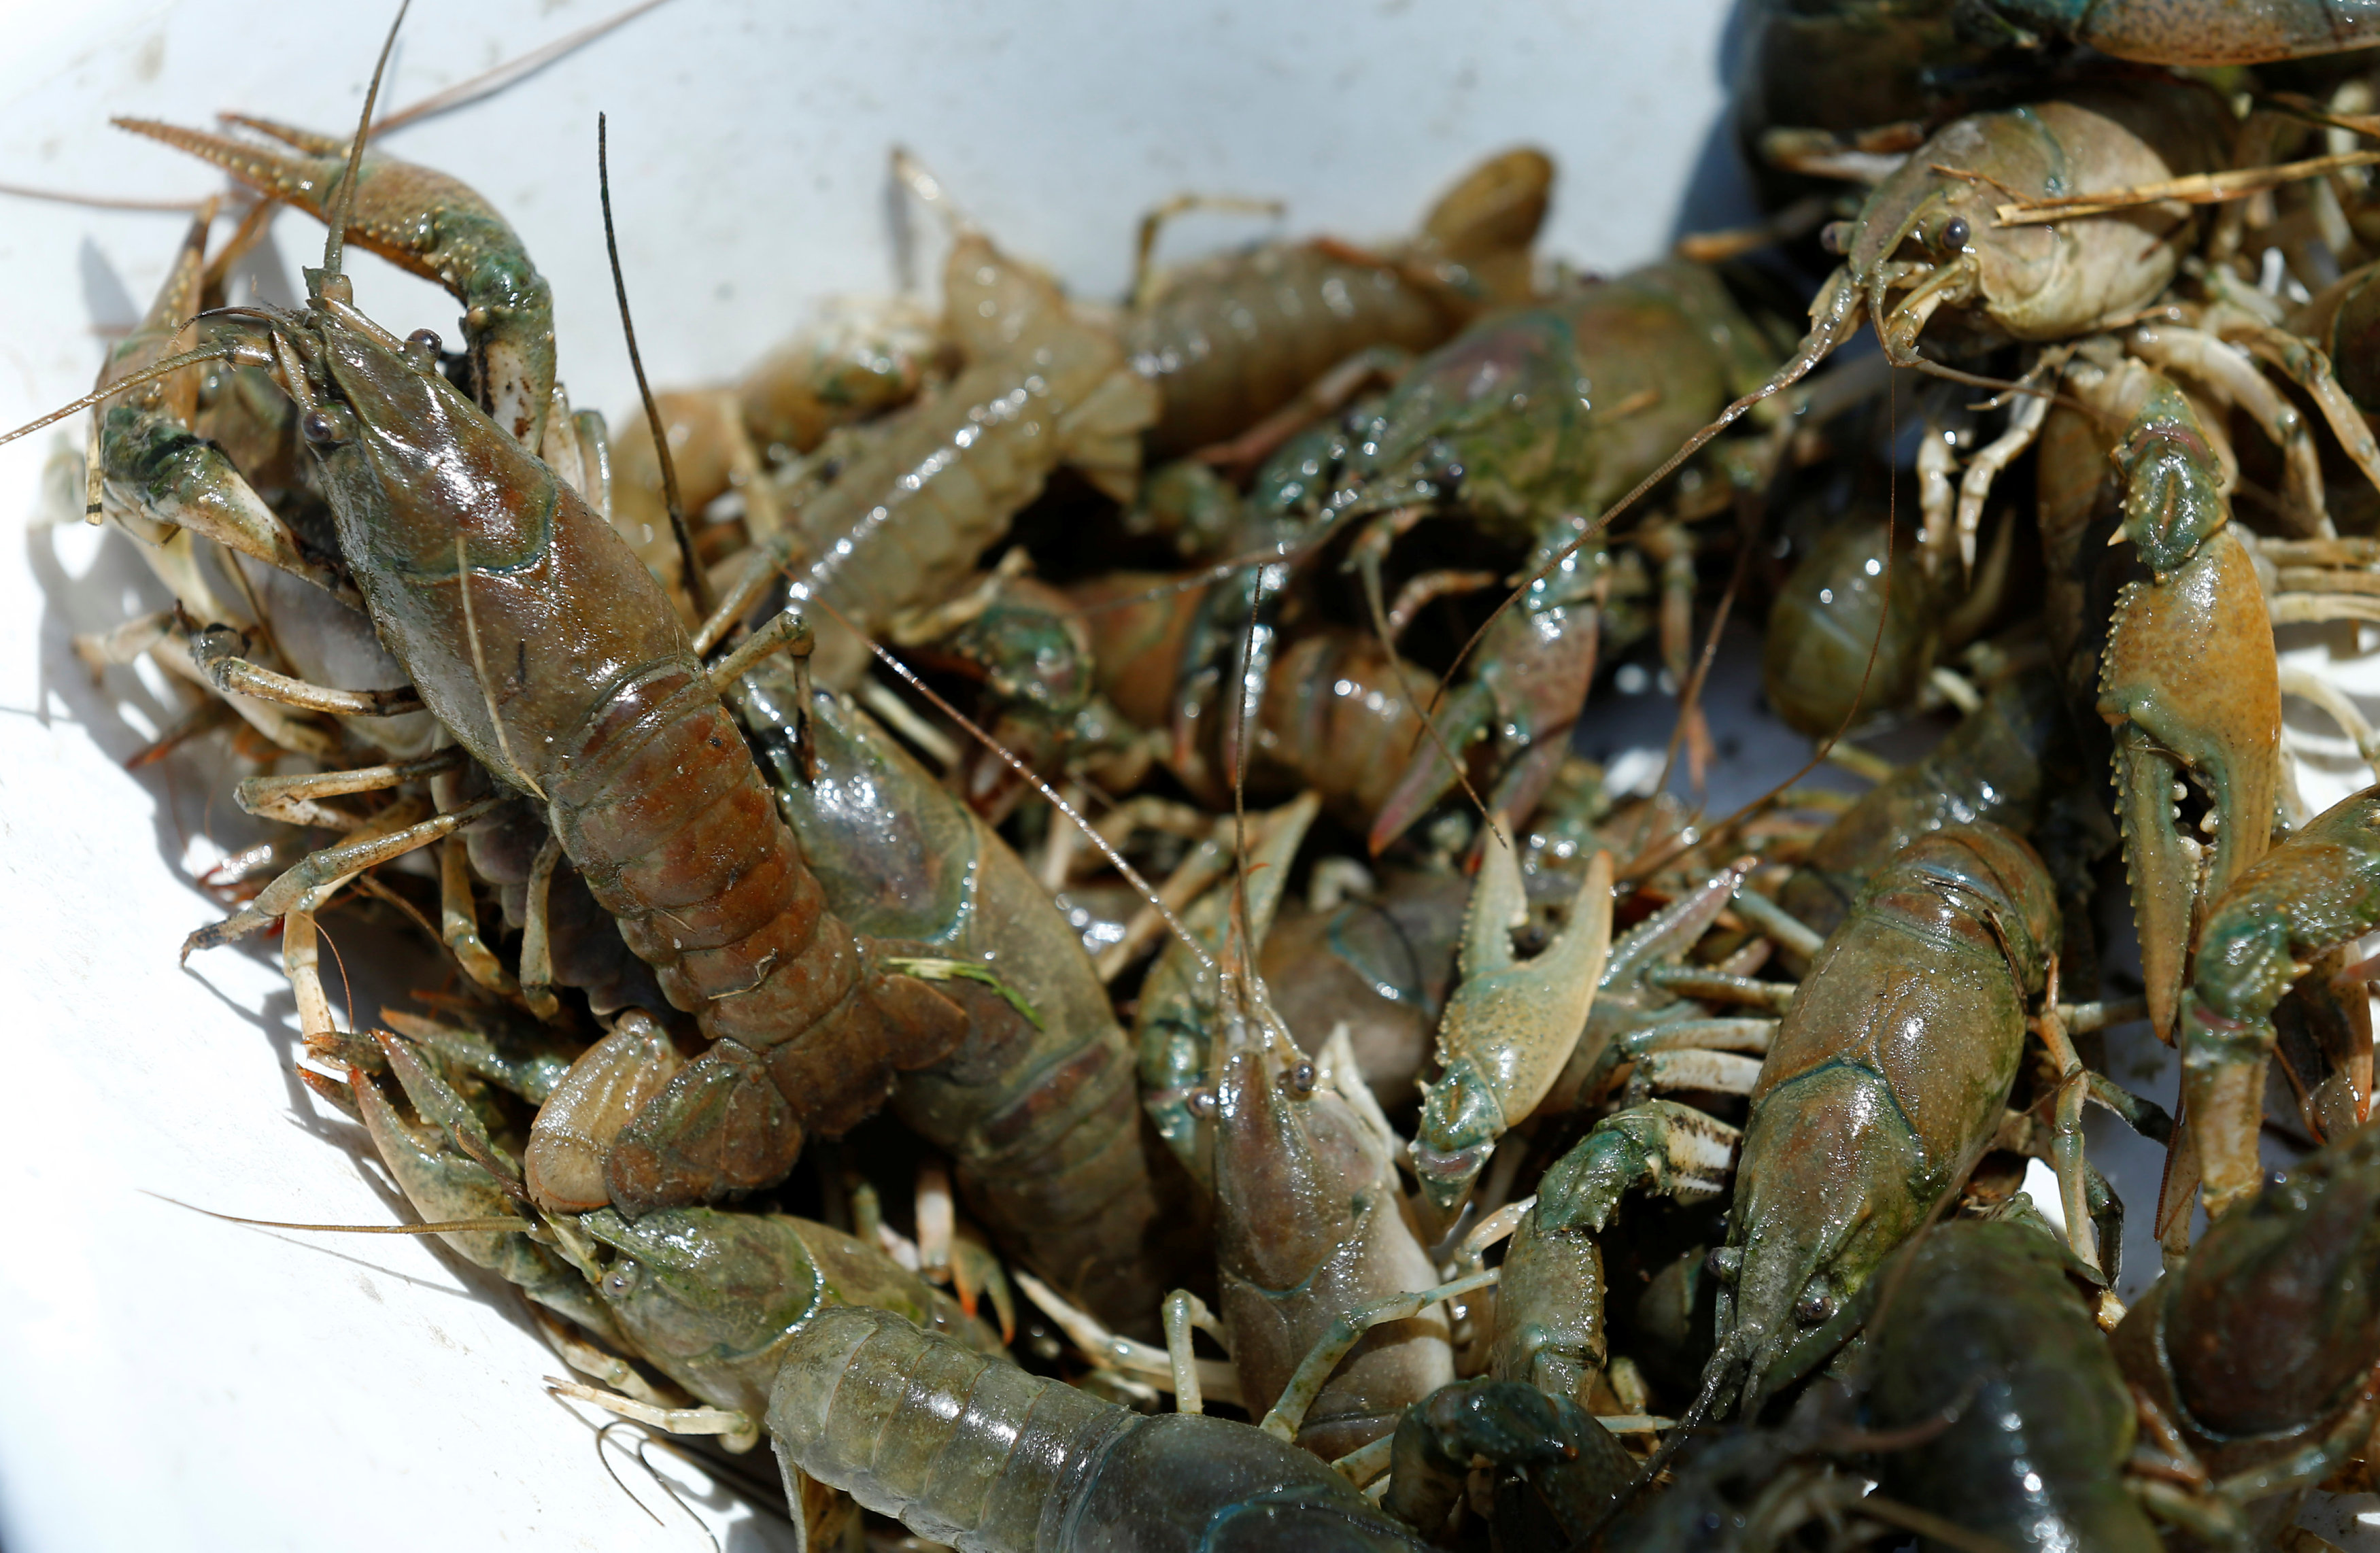 Calico crayfish (Orconectes immunis) are pictured in Rheinstetten